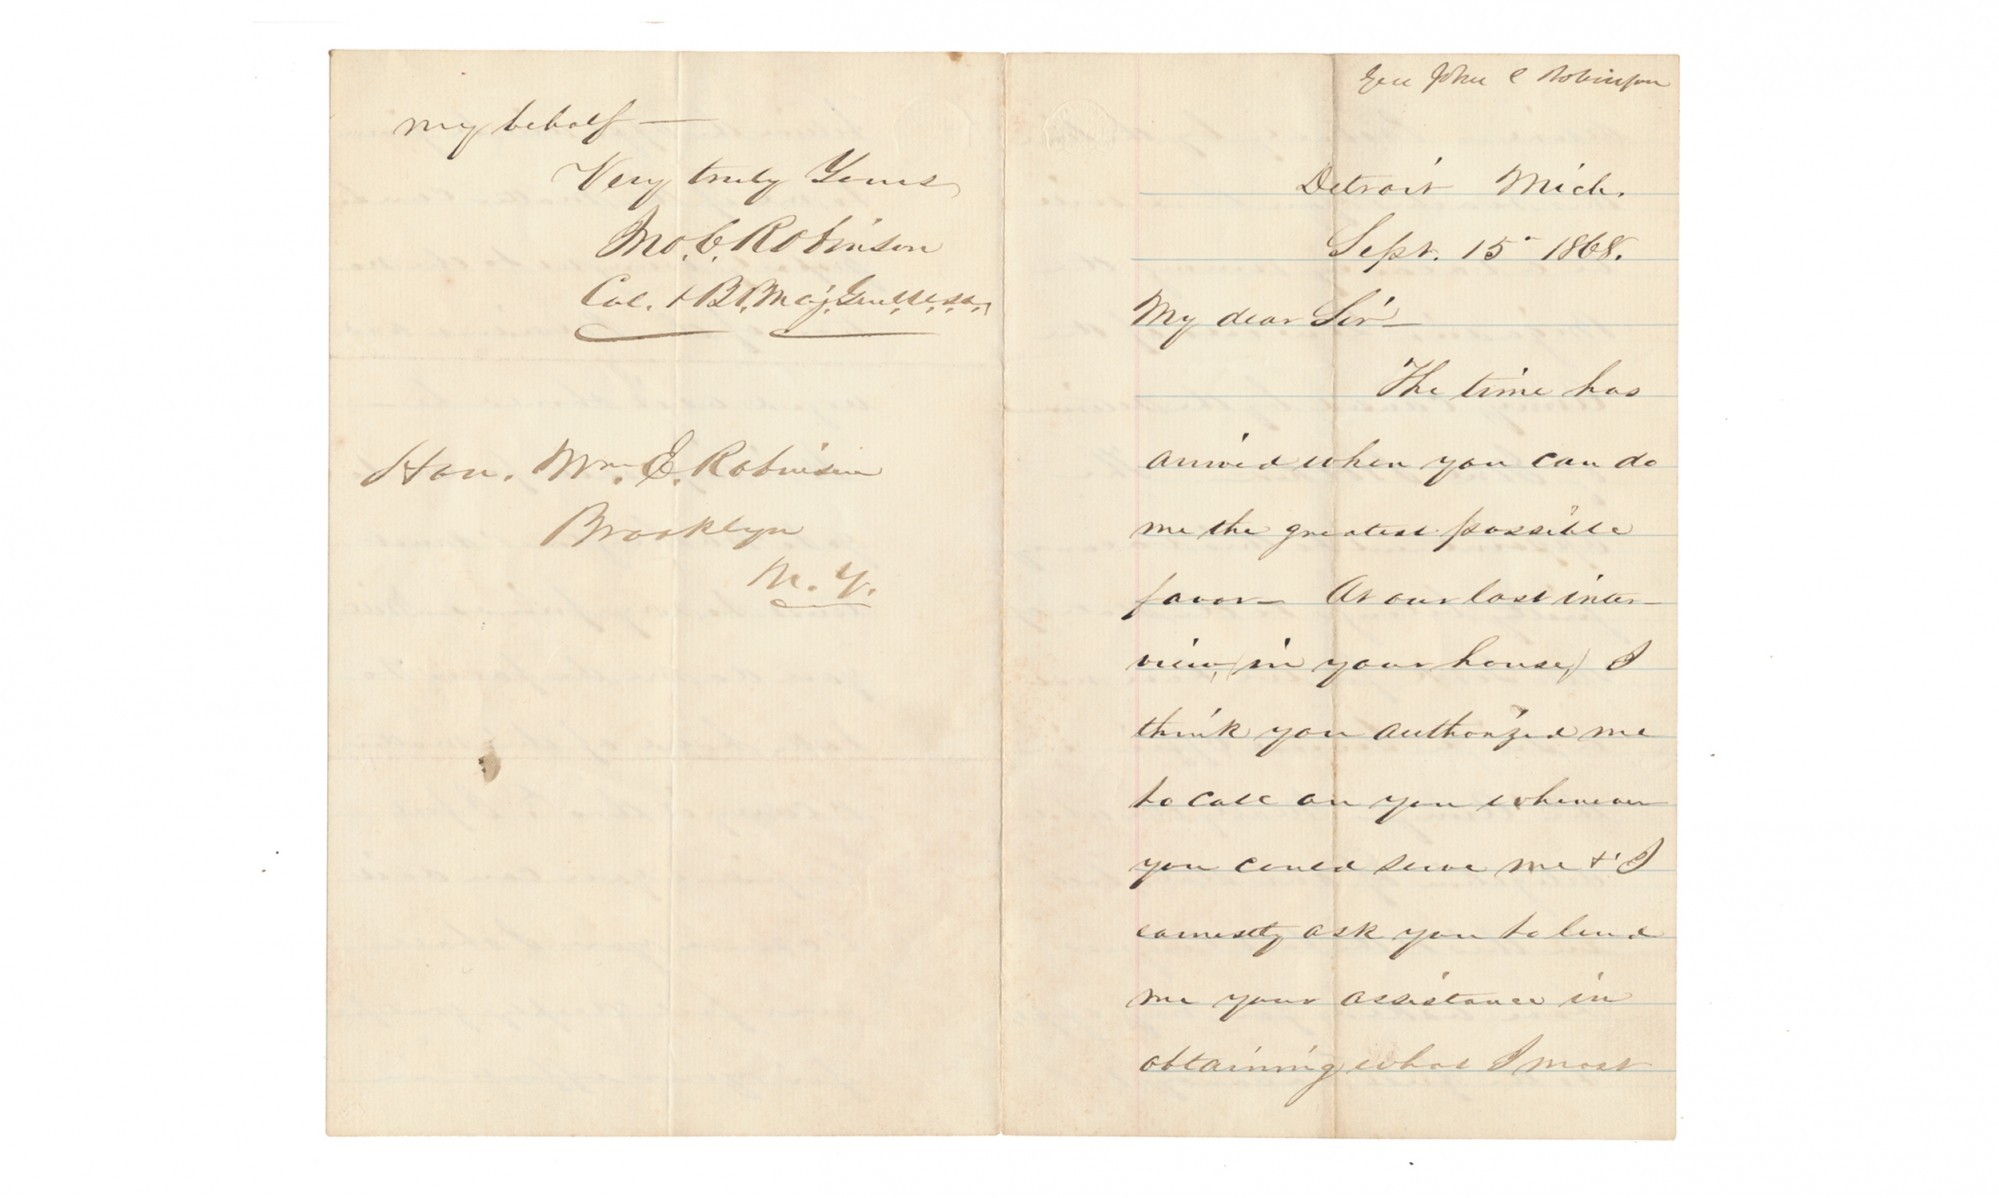 AUTOGRAPH LETTER SIGNED - JOHN C. ROBINSON, COLONEL AND BREVET MAJOR GENERAL, USA